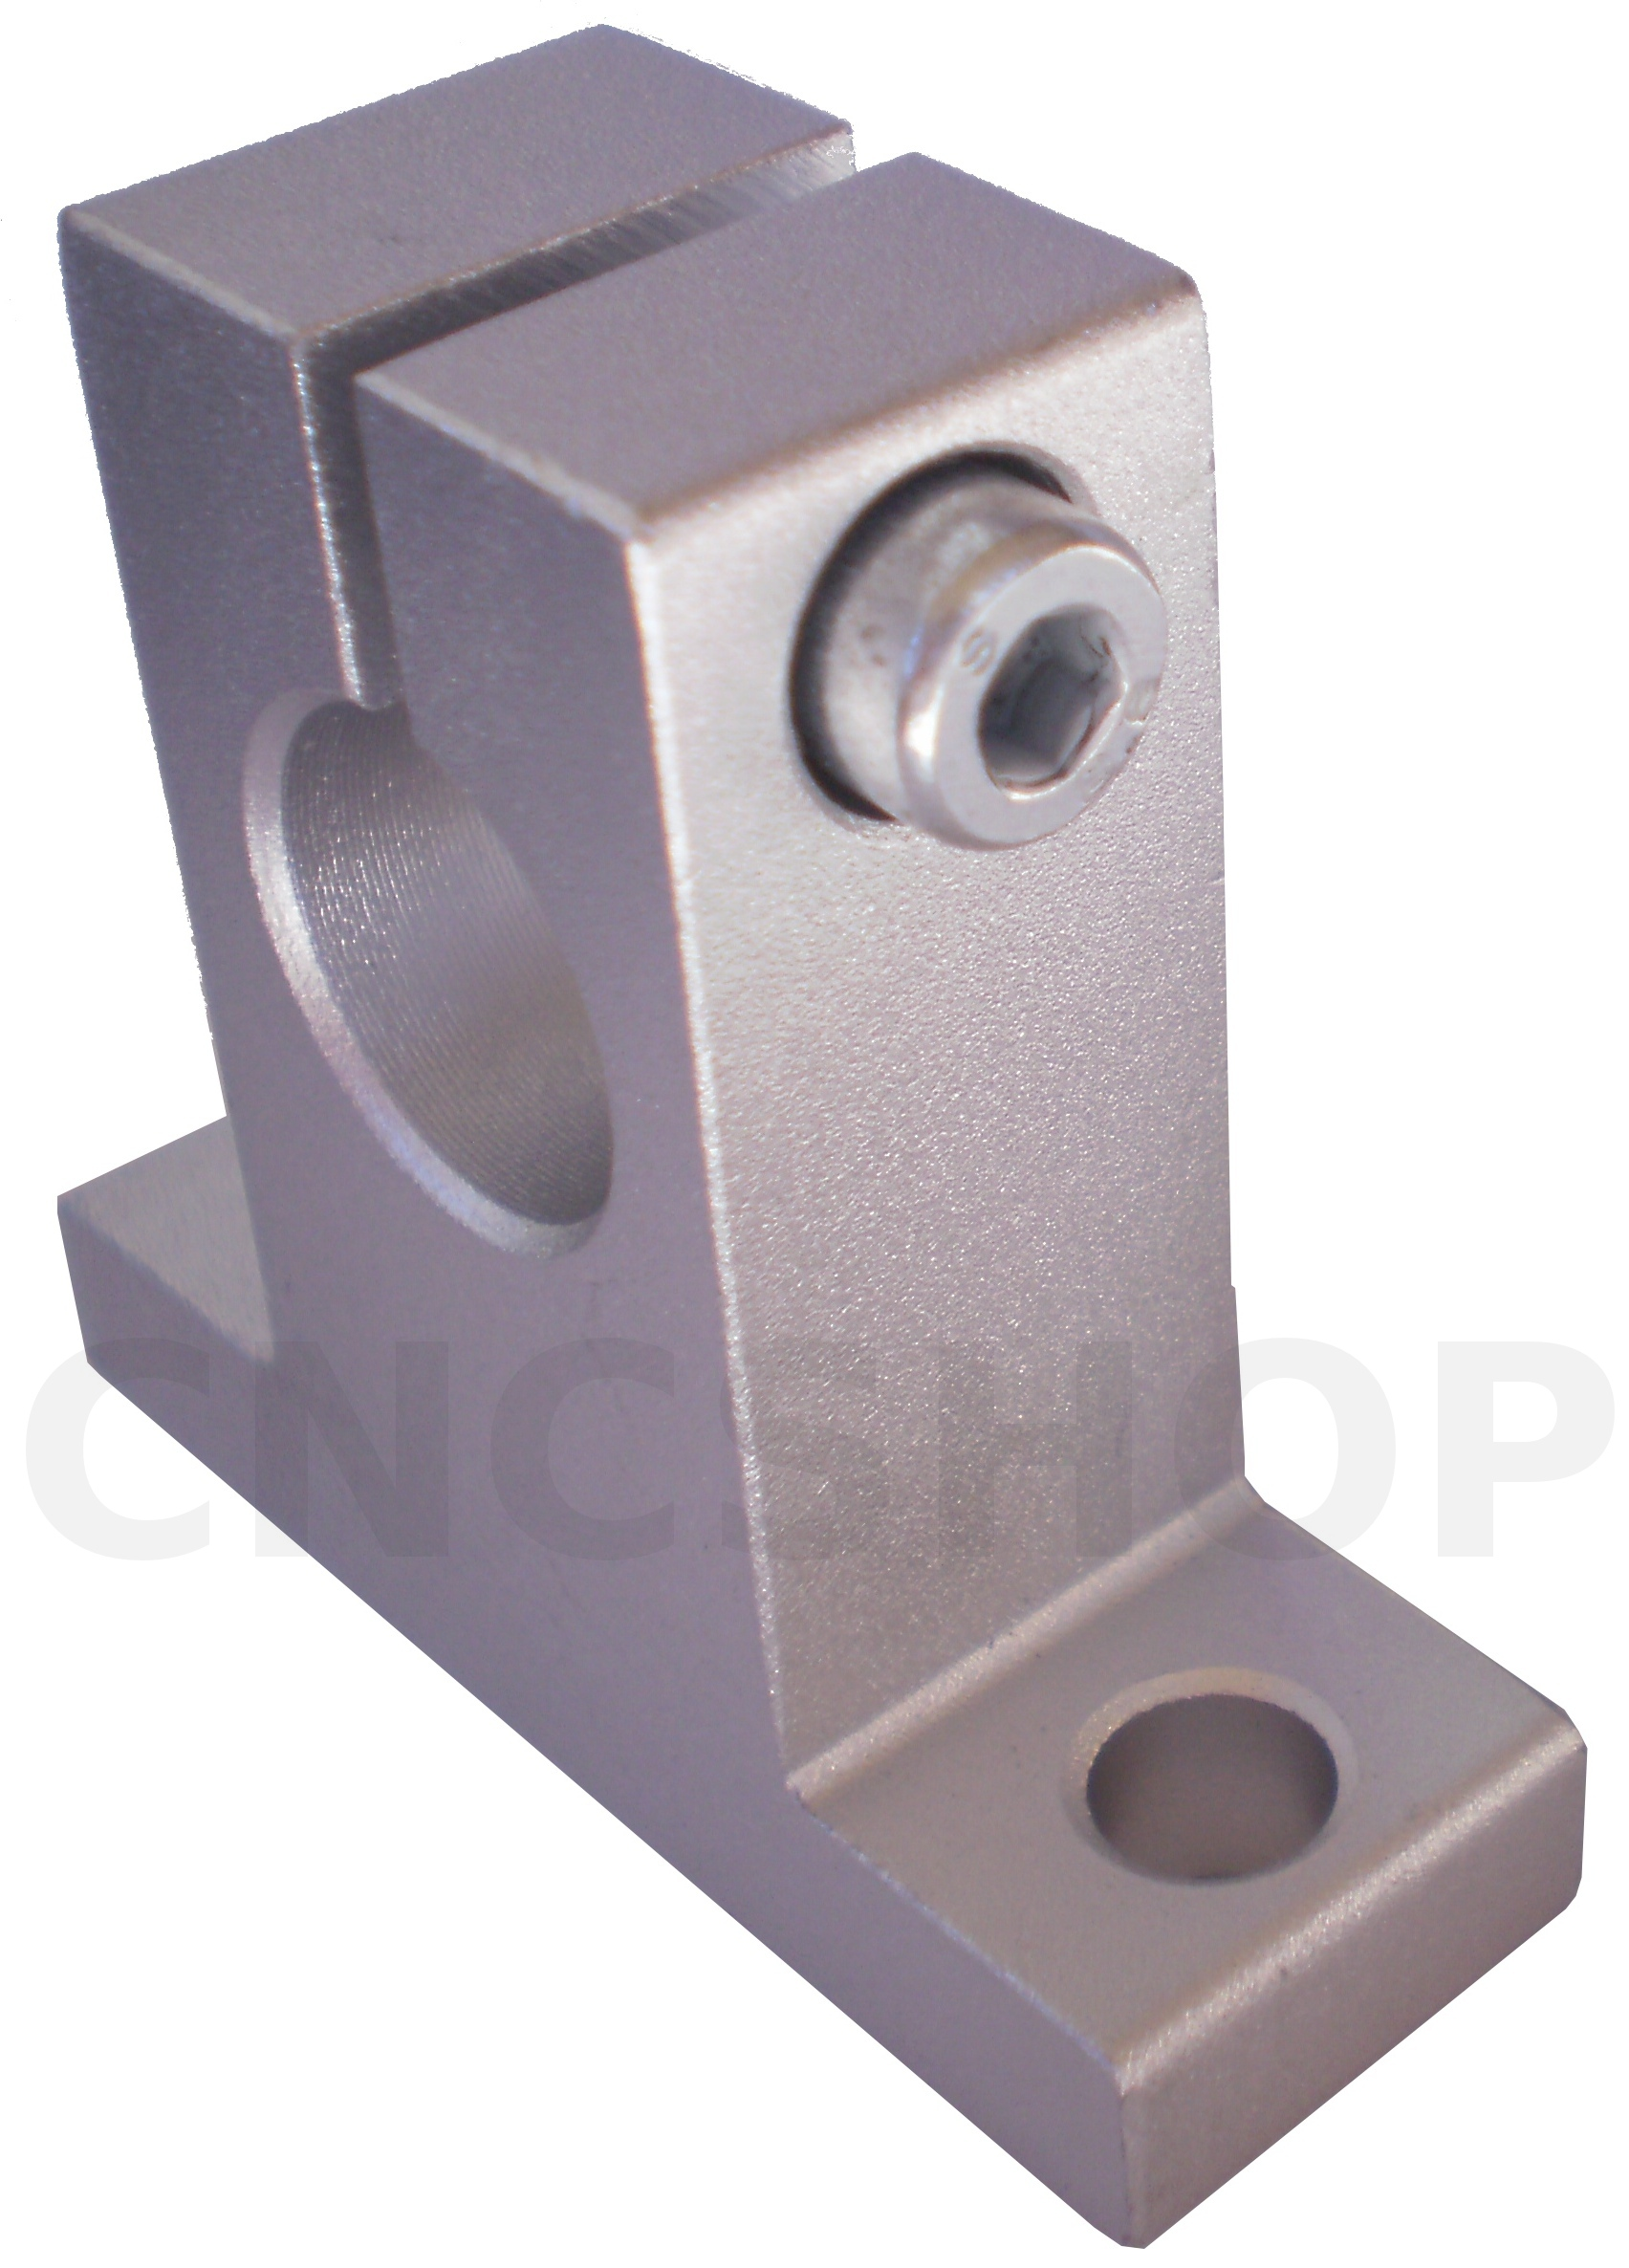 SK12 12mm STANDARD BOTTOM MOUNT SHAFT SUPPORT